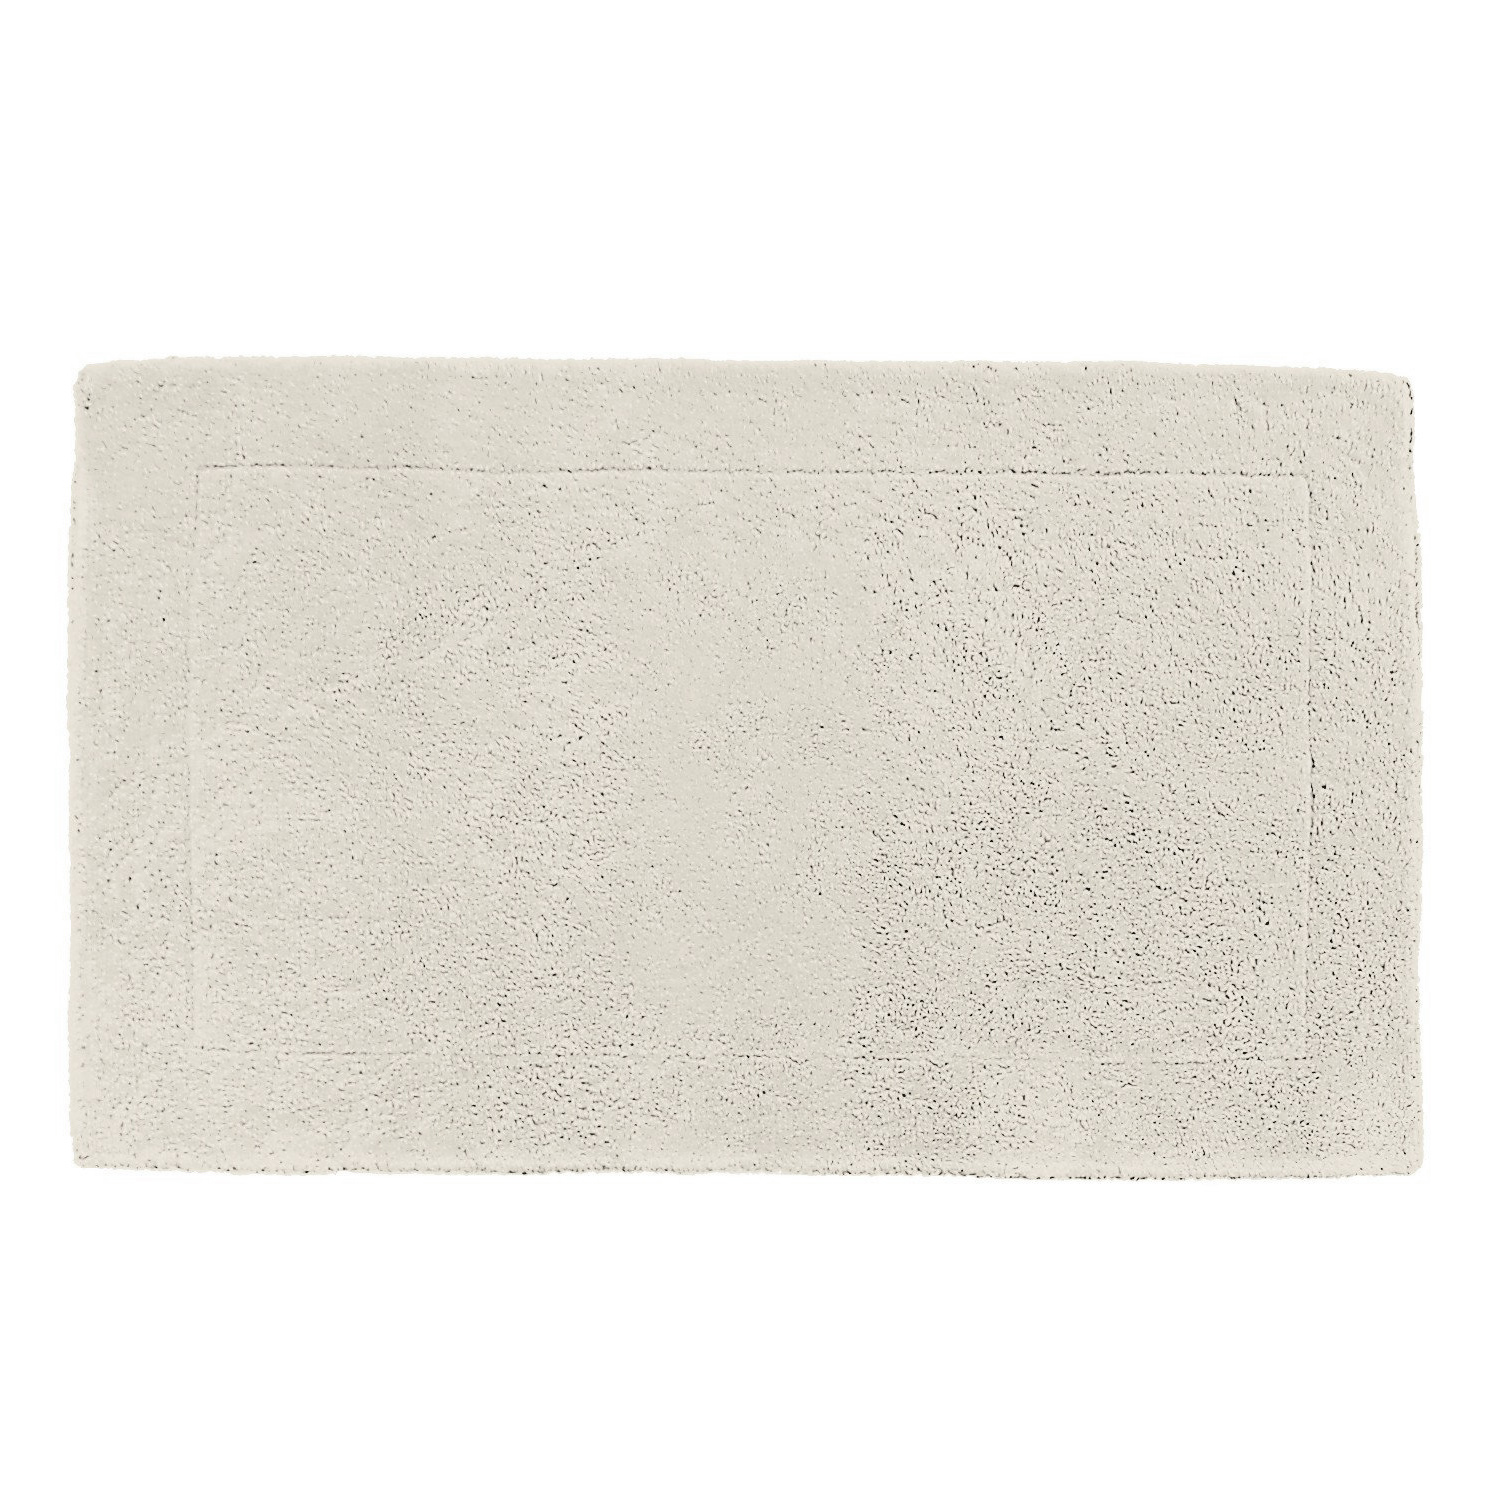 Double Sided Bath Rugs - Assorted Colours-4